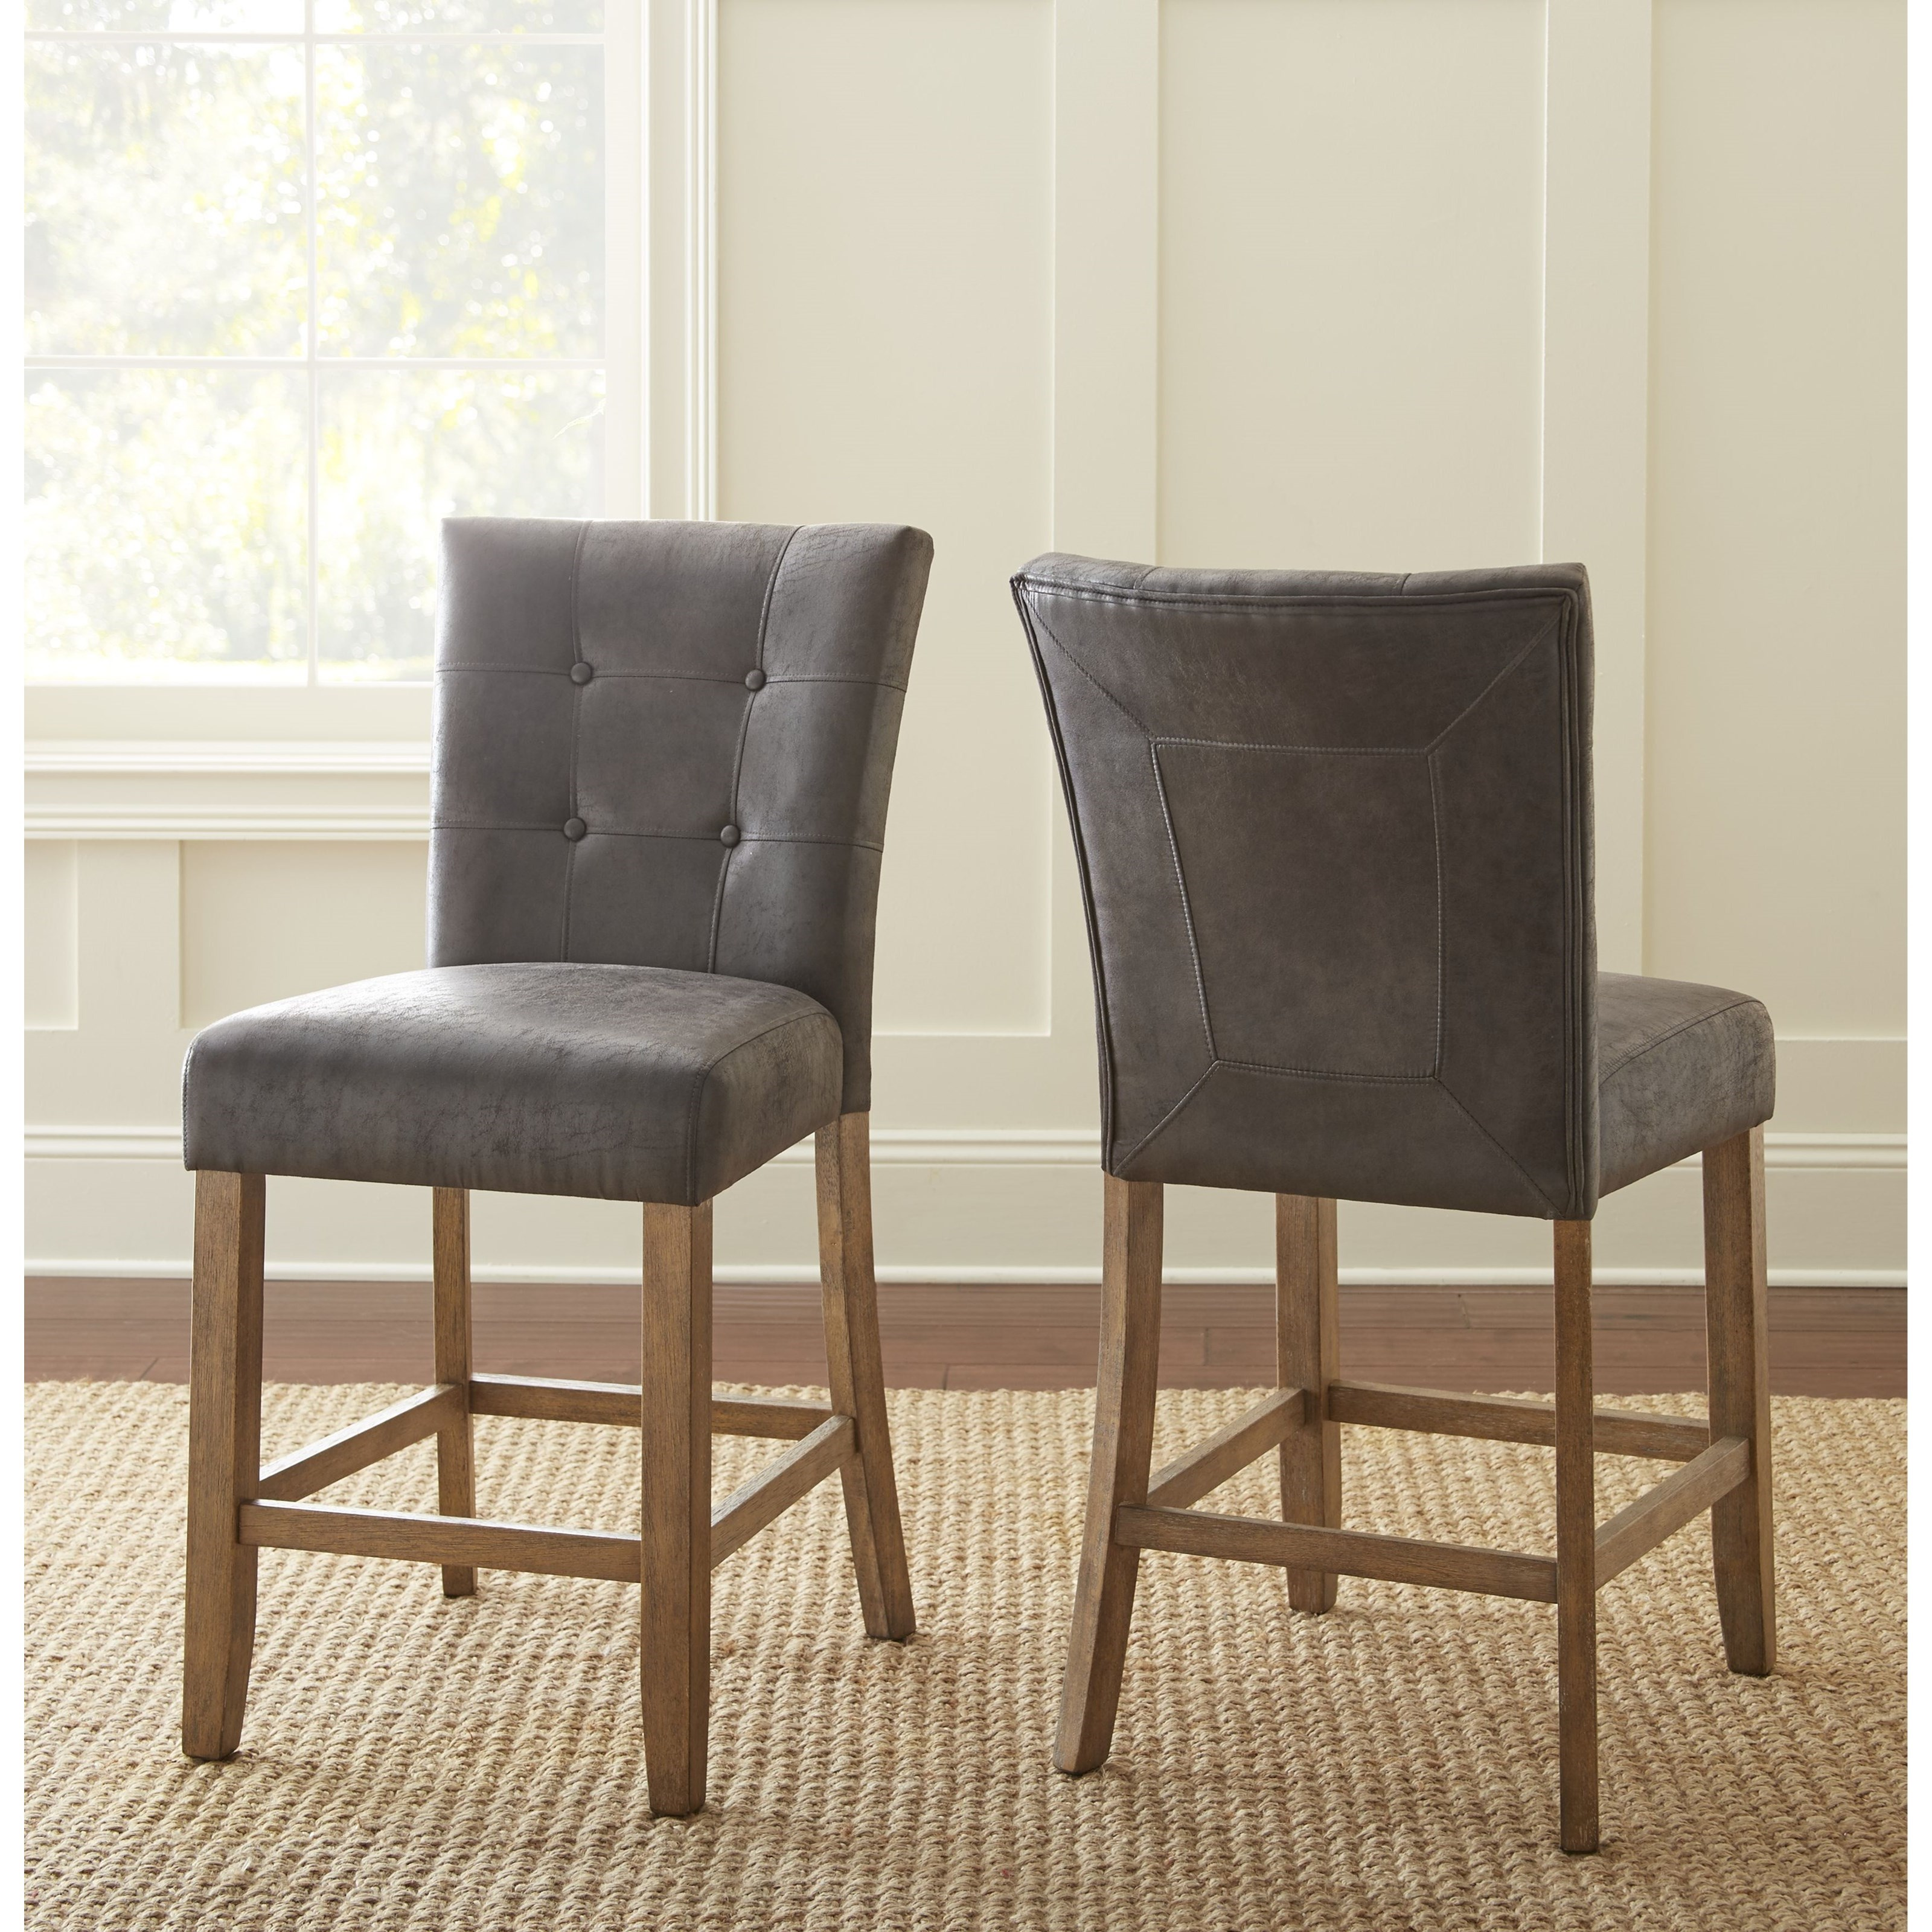 upholstered counter height chairs large occasional debby transitional stool with button morris home debbybar